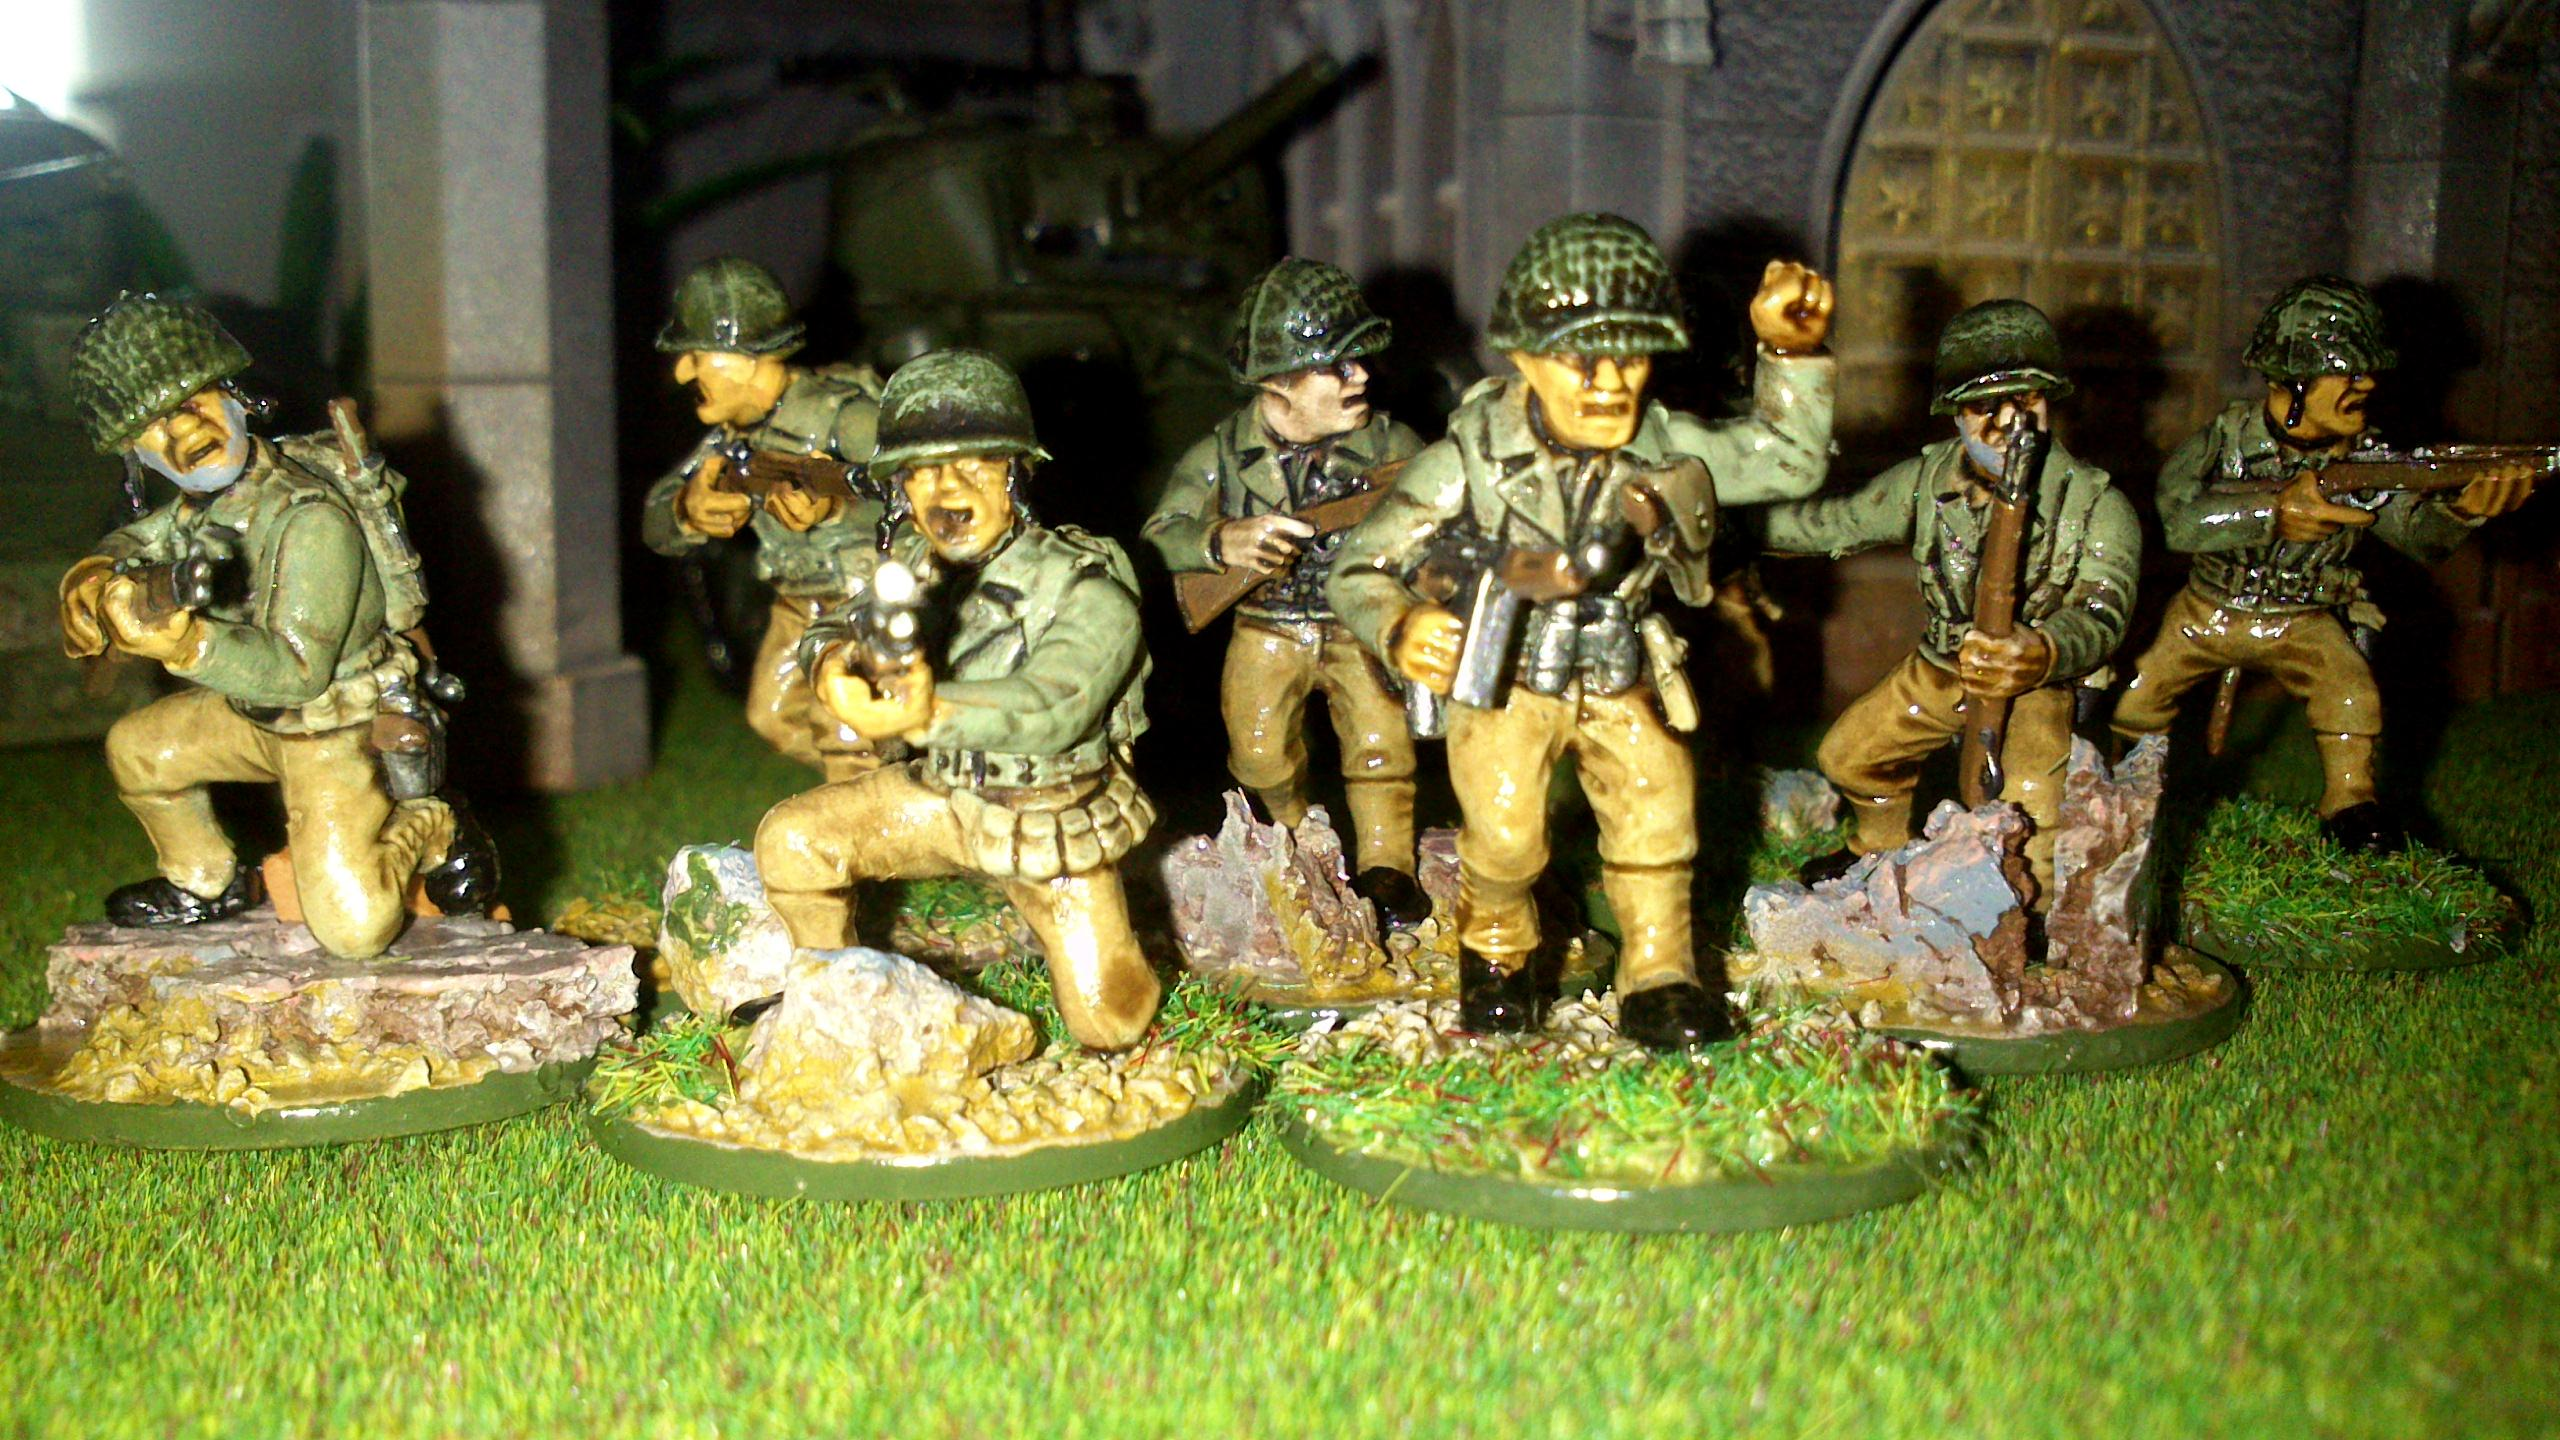 America, Bolt Action, Germans, Heer, Infantry, Painted, Panthers, Sherman, Tank, Waffen, Warlord